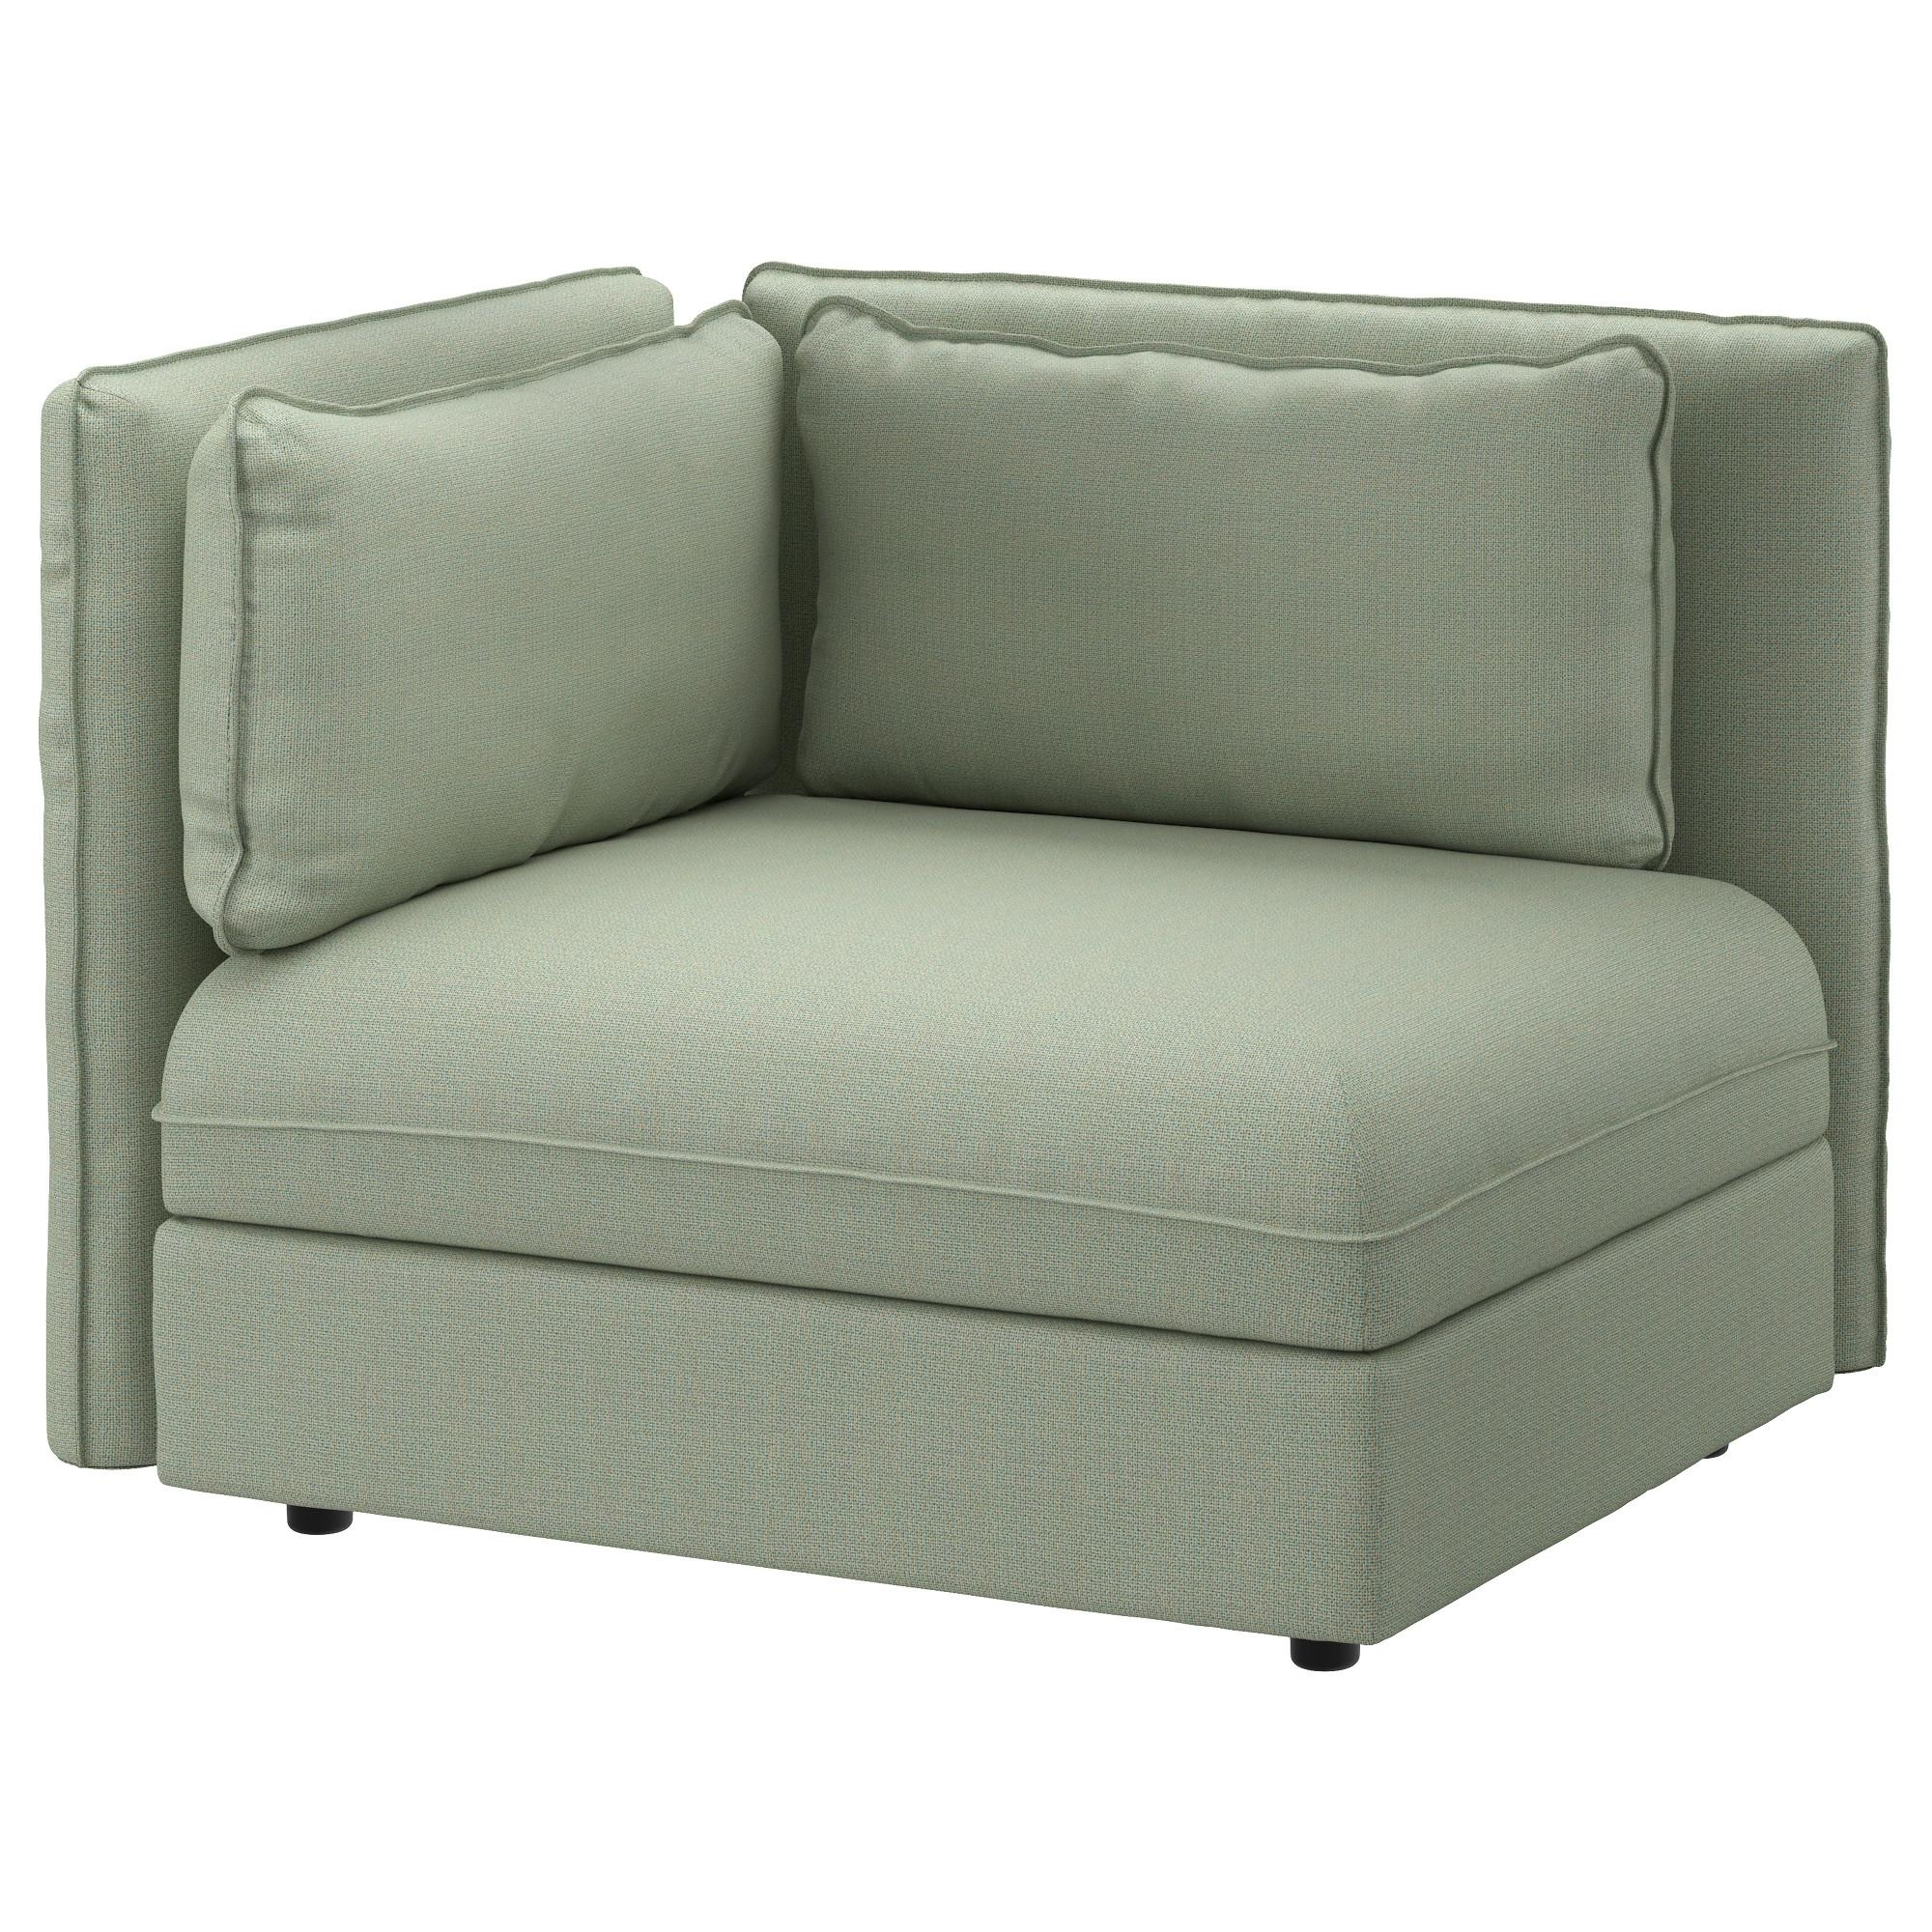 sofas in ikea scs lazy boy uptown sofa 20 collection of sectional sleeper ideas